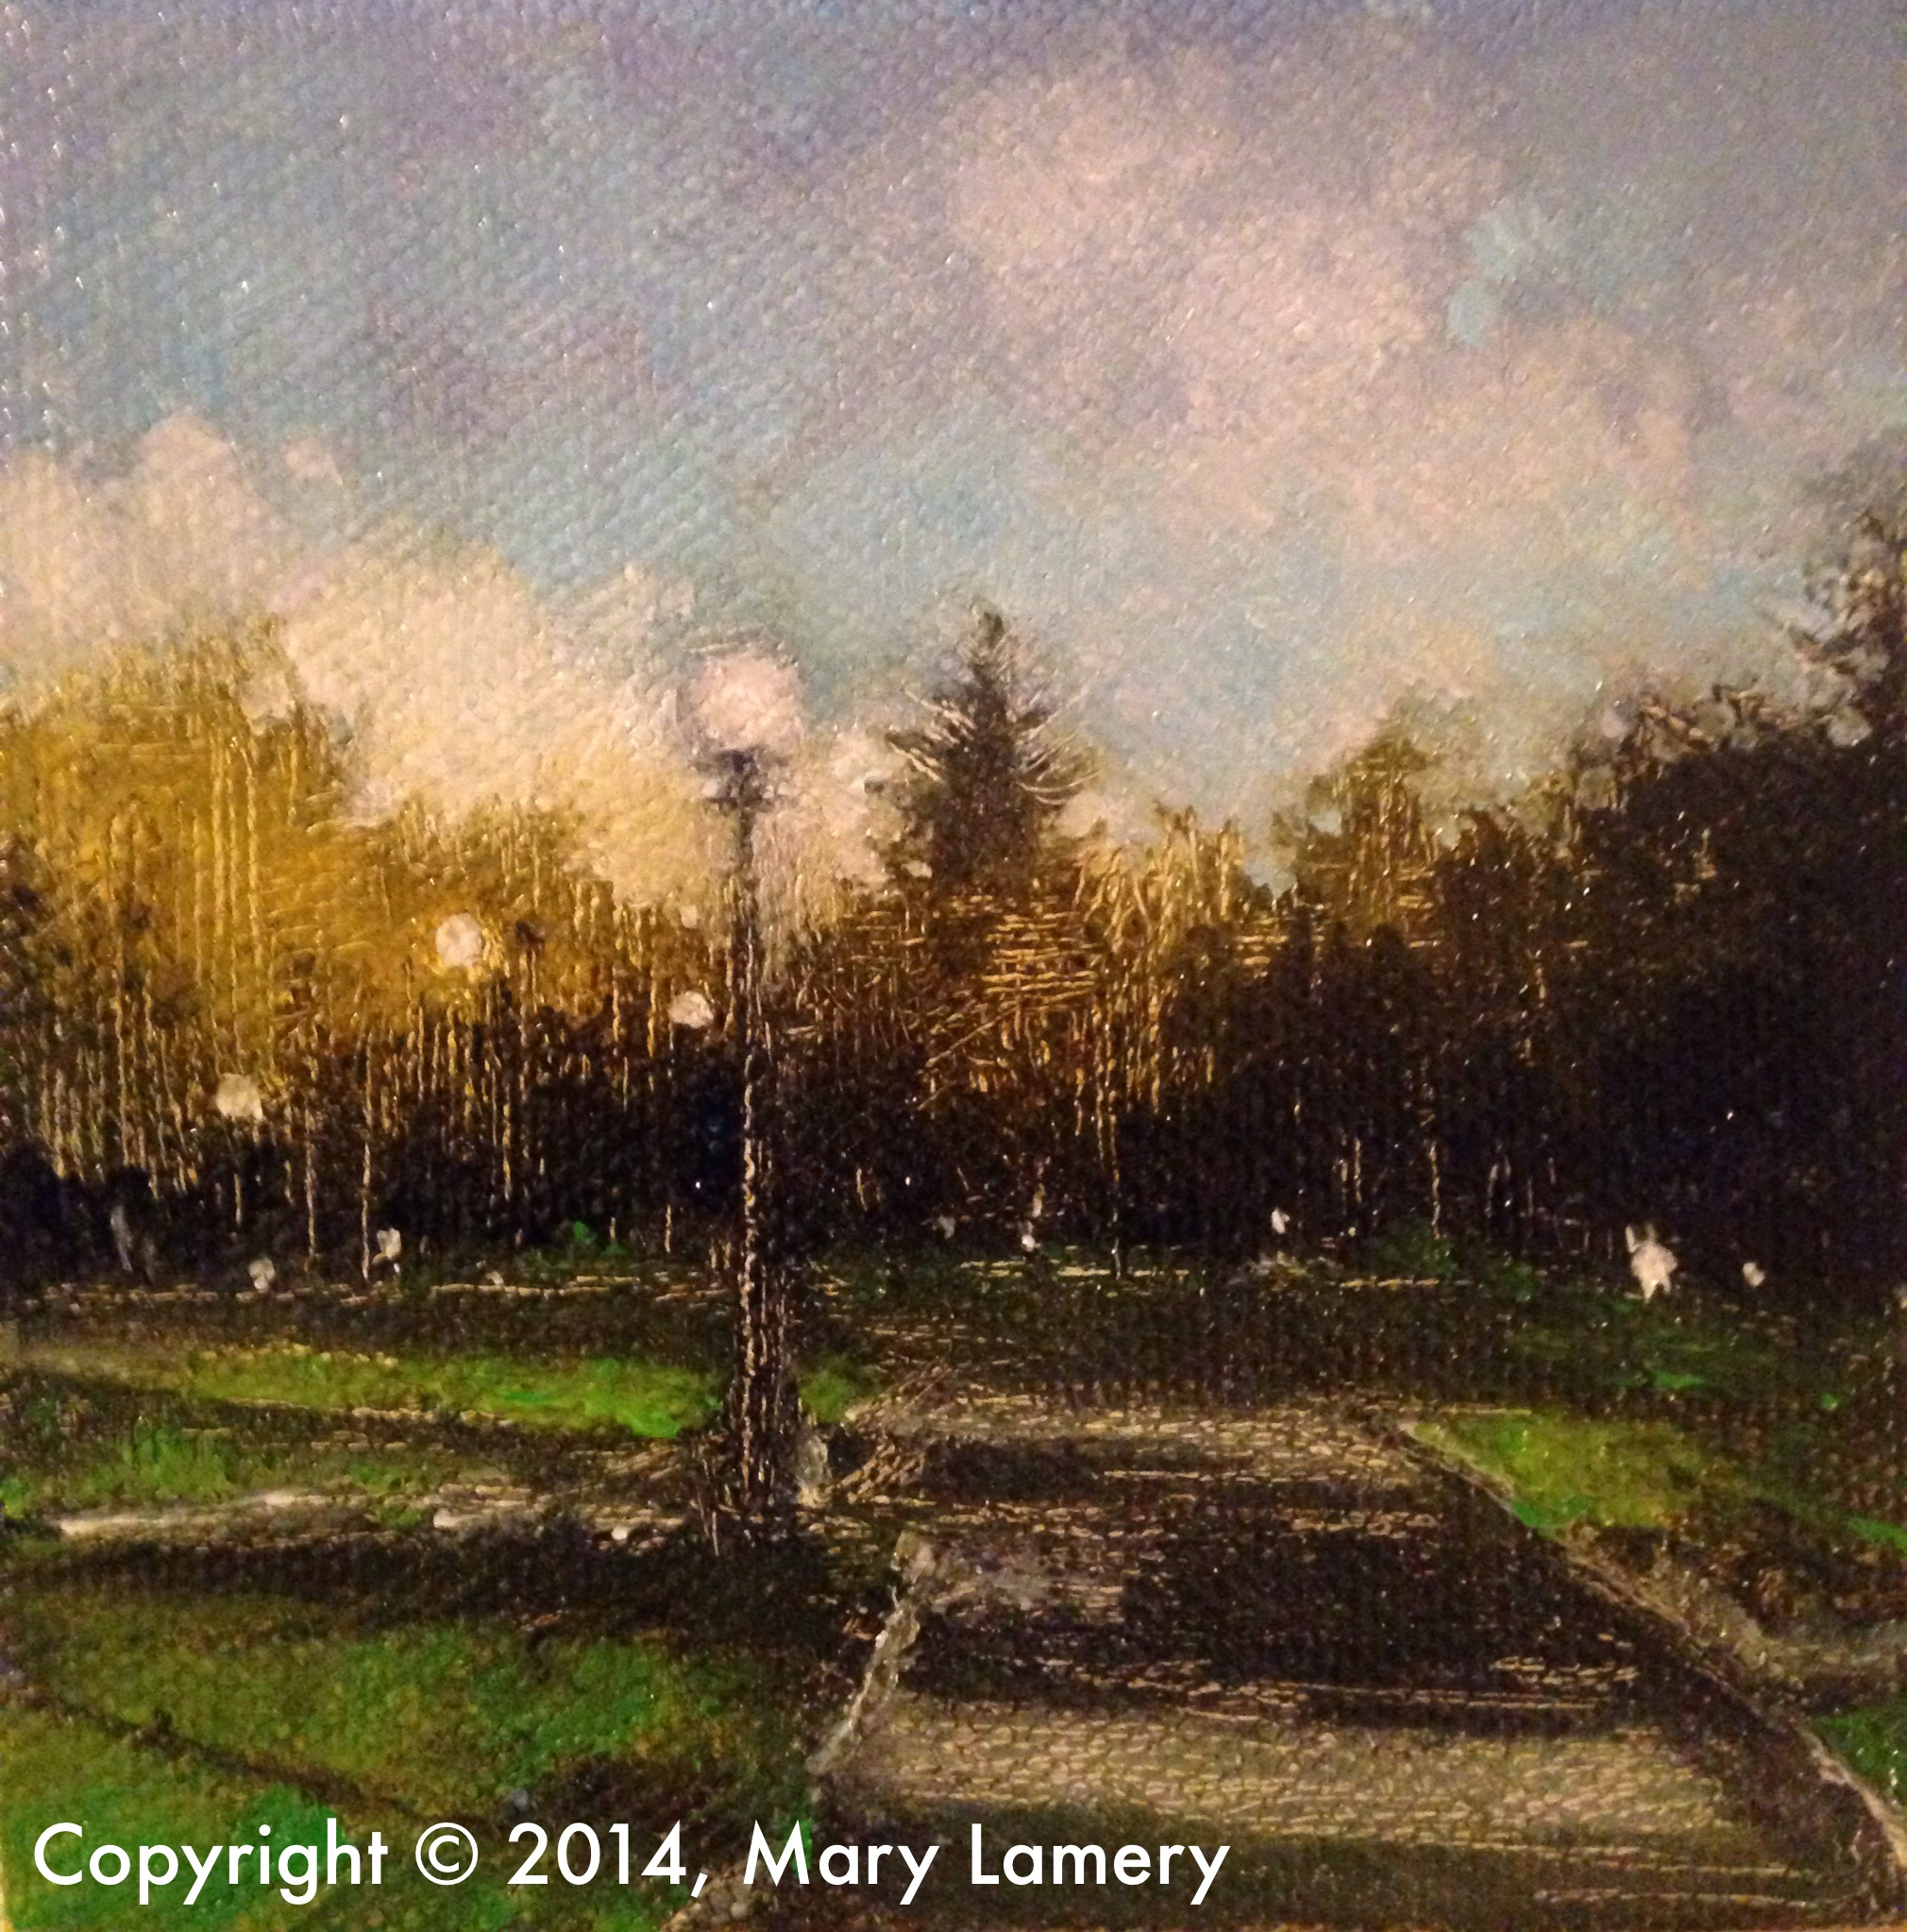 """Morning, Cal Anderson Park. 4""""x4"""". Oil on Canvas. 2014.   Day 30. September 30, 2014   """"This is the path I run on every Saturday morning at 8 am. I always question my sanity getting up at 6:15 and driving to Captiol Hill to run but once I start I'm reminded of why I love running in Cal Anderson in the early morning. It's so peaceful you forget that you are in the middle of the city. You get to know the parks workers – most of them usually wave. There is also a lady that is always out with at least two large dogs, sometimes a doggie friend joins them to make it three. They always say hello. The blues and greens in this painting perfectly capture that """"fresh morning"""" feeling – where everything seems a bit more new, clear and clean. It's that part of the day where Seattle seems to take a deep breath and exhales before the hustle and bustle begin."""""""